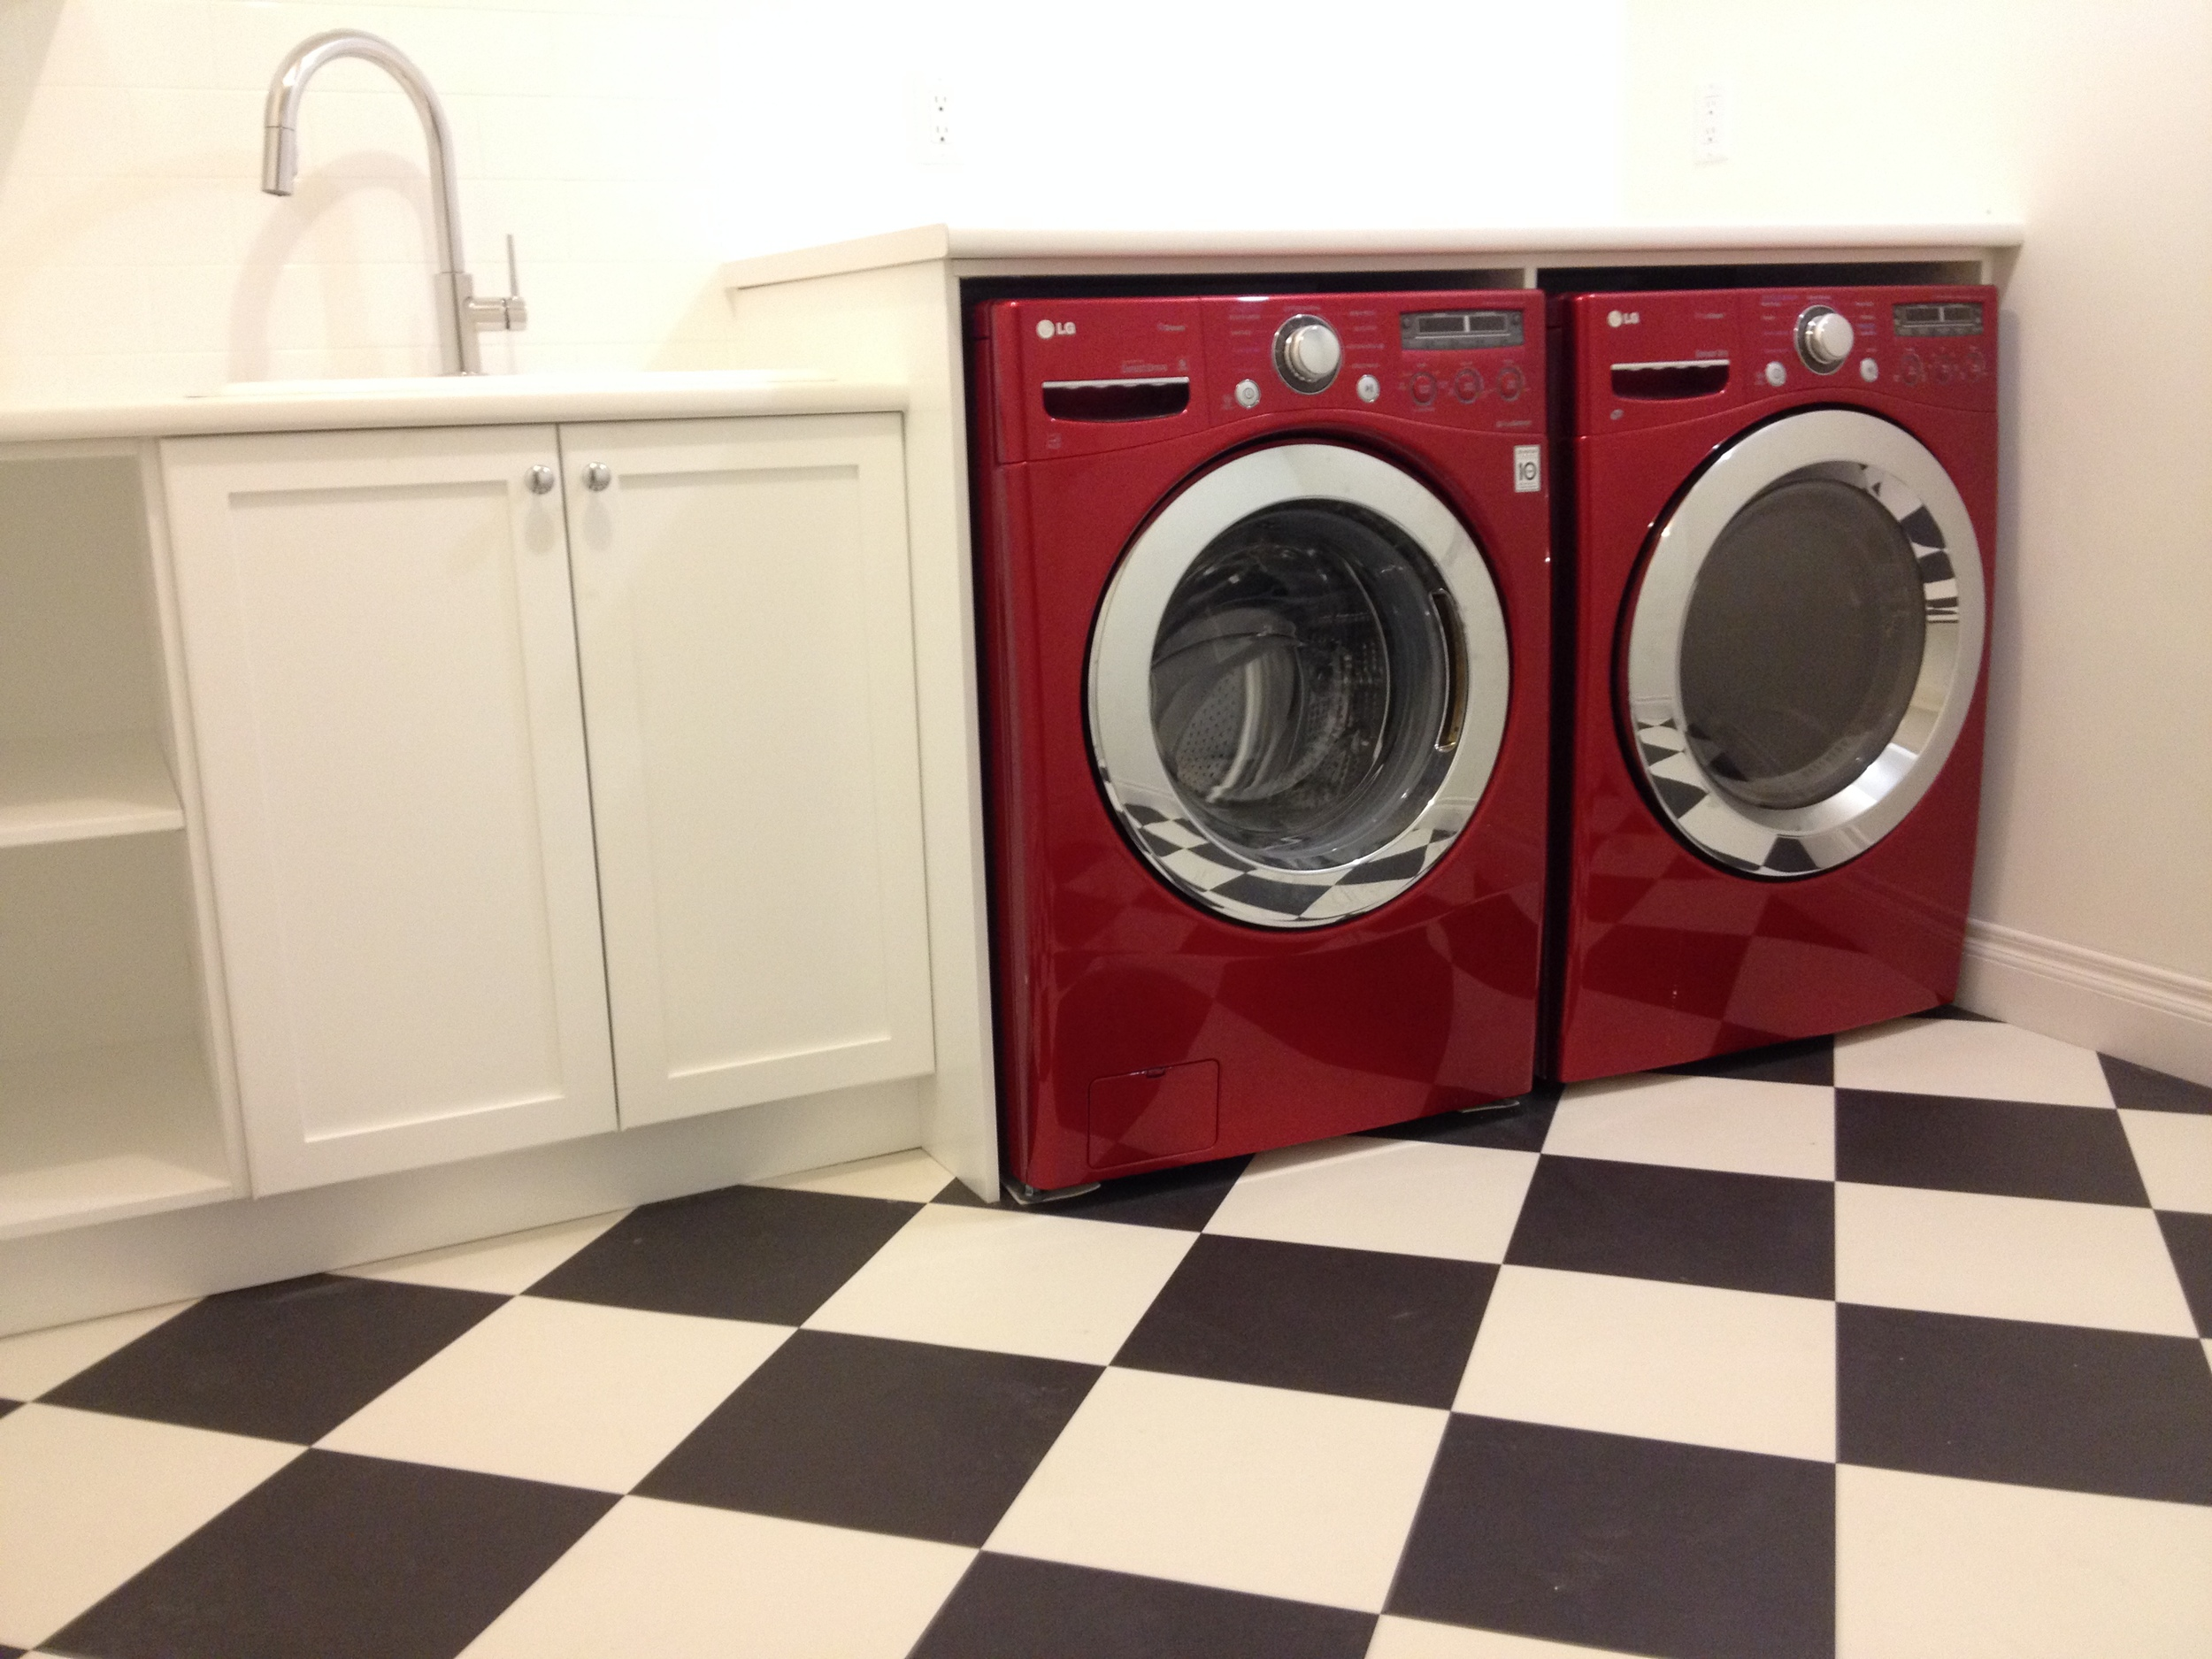 Red Washer & Dryer, Black & White Tile